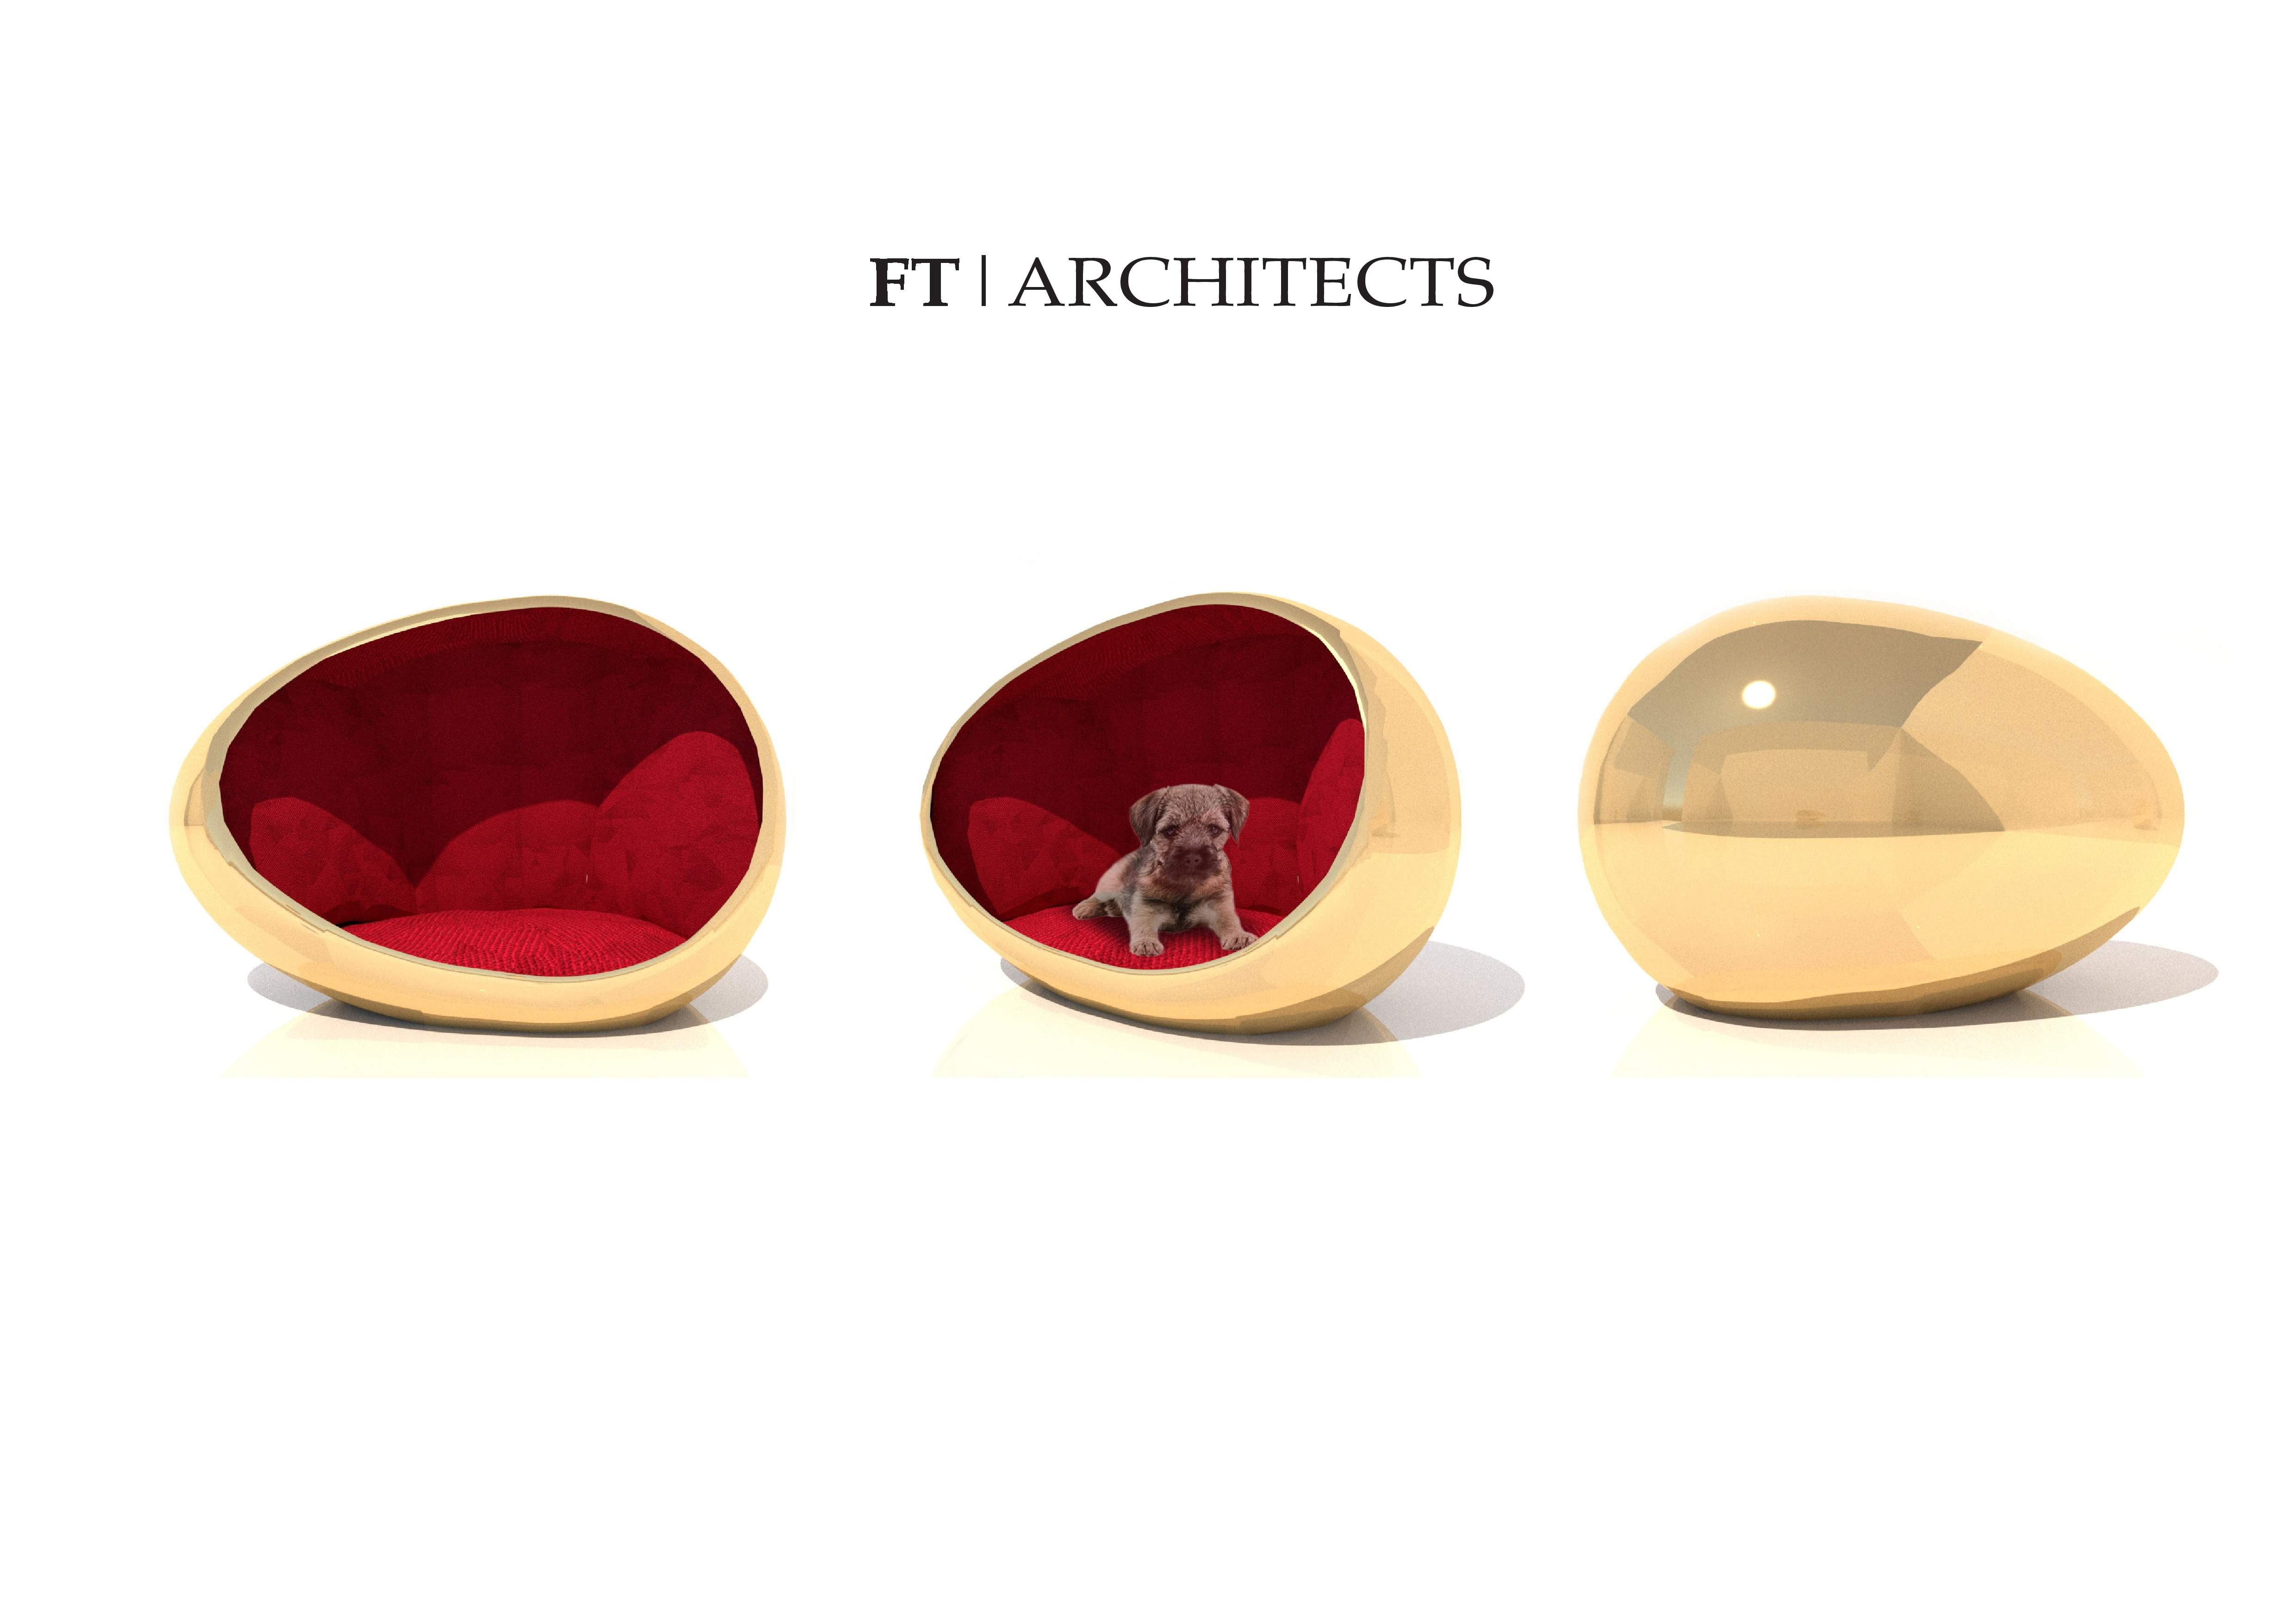 Lot 11 - FT Architects with Bruce Oldfield OBE - The Egg